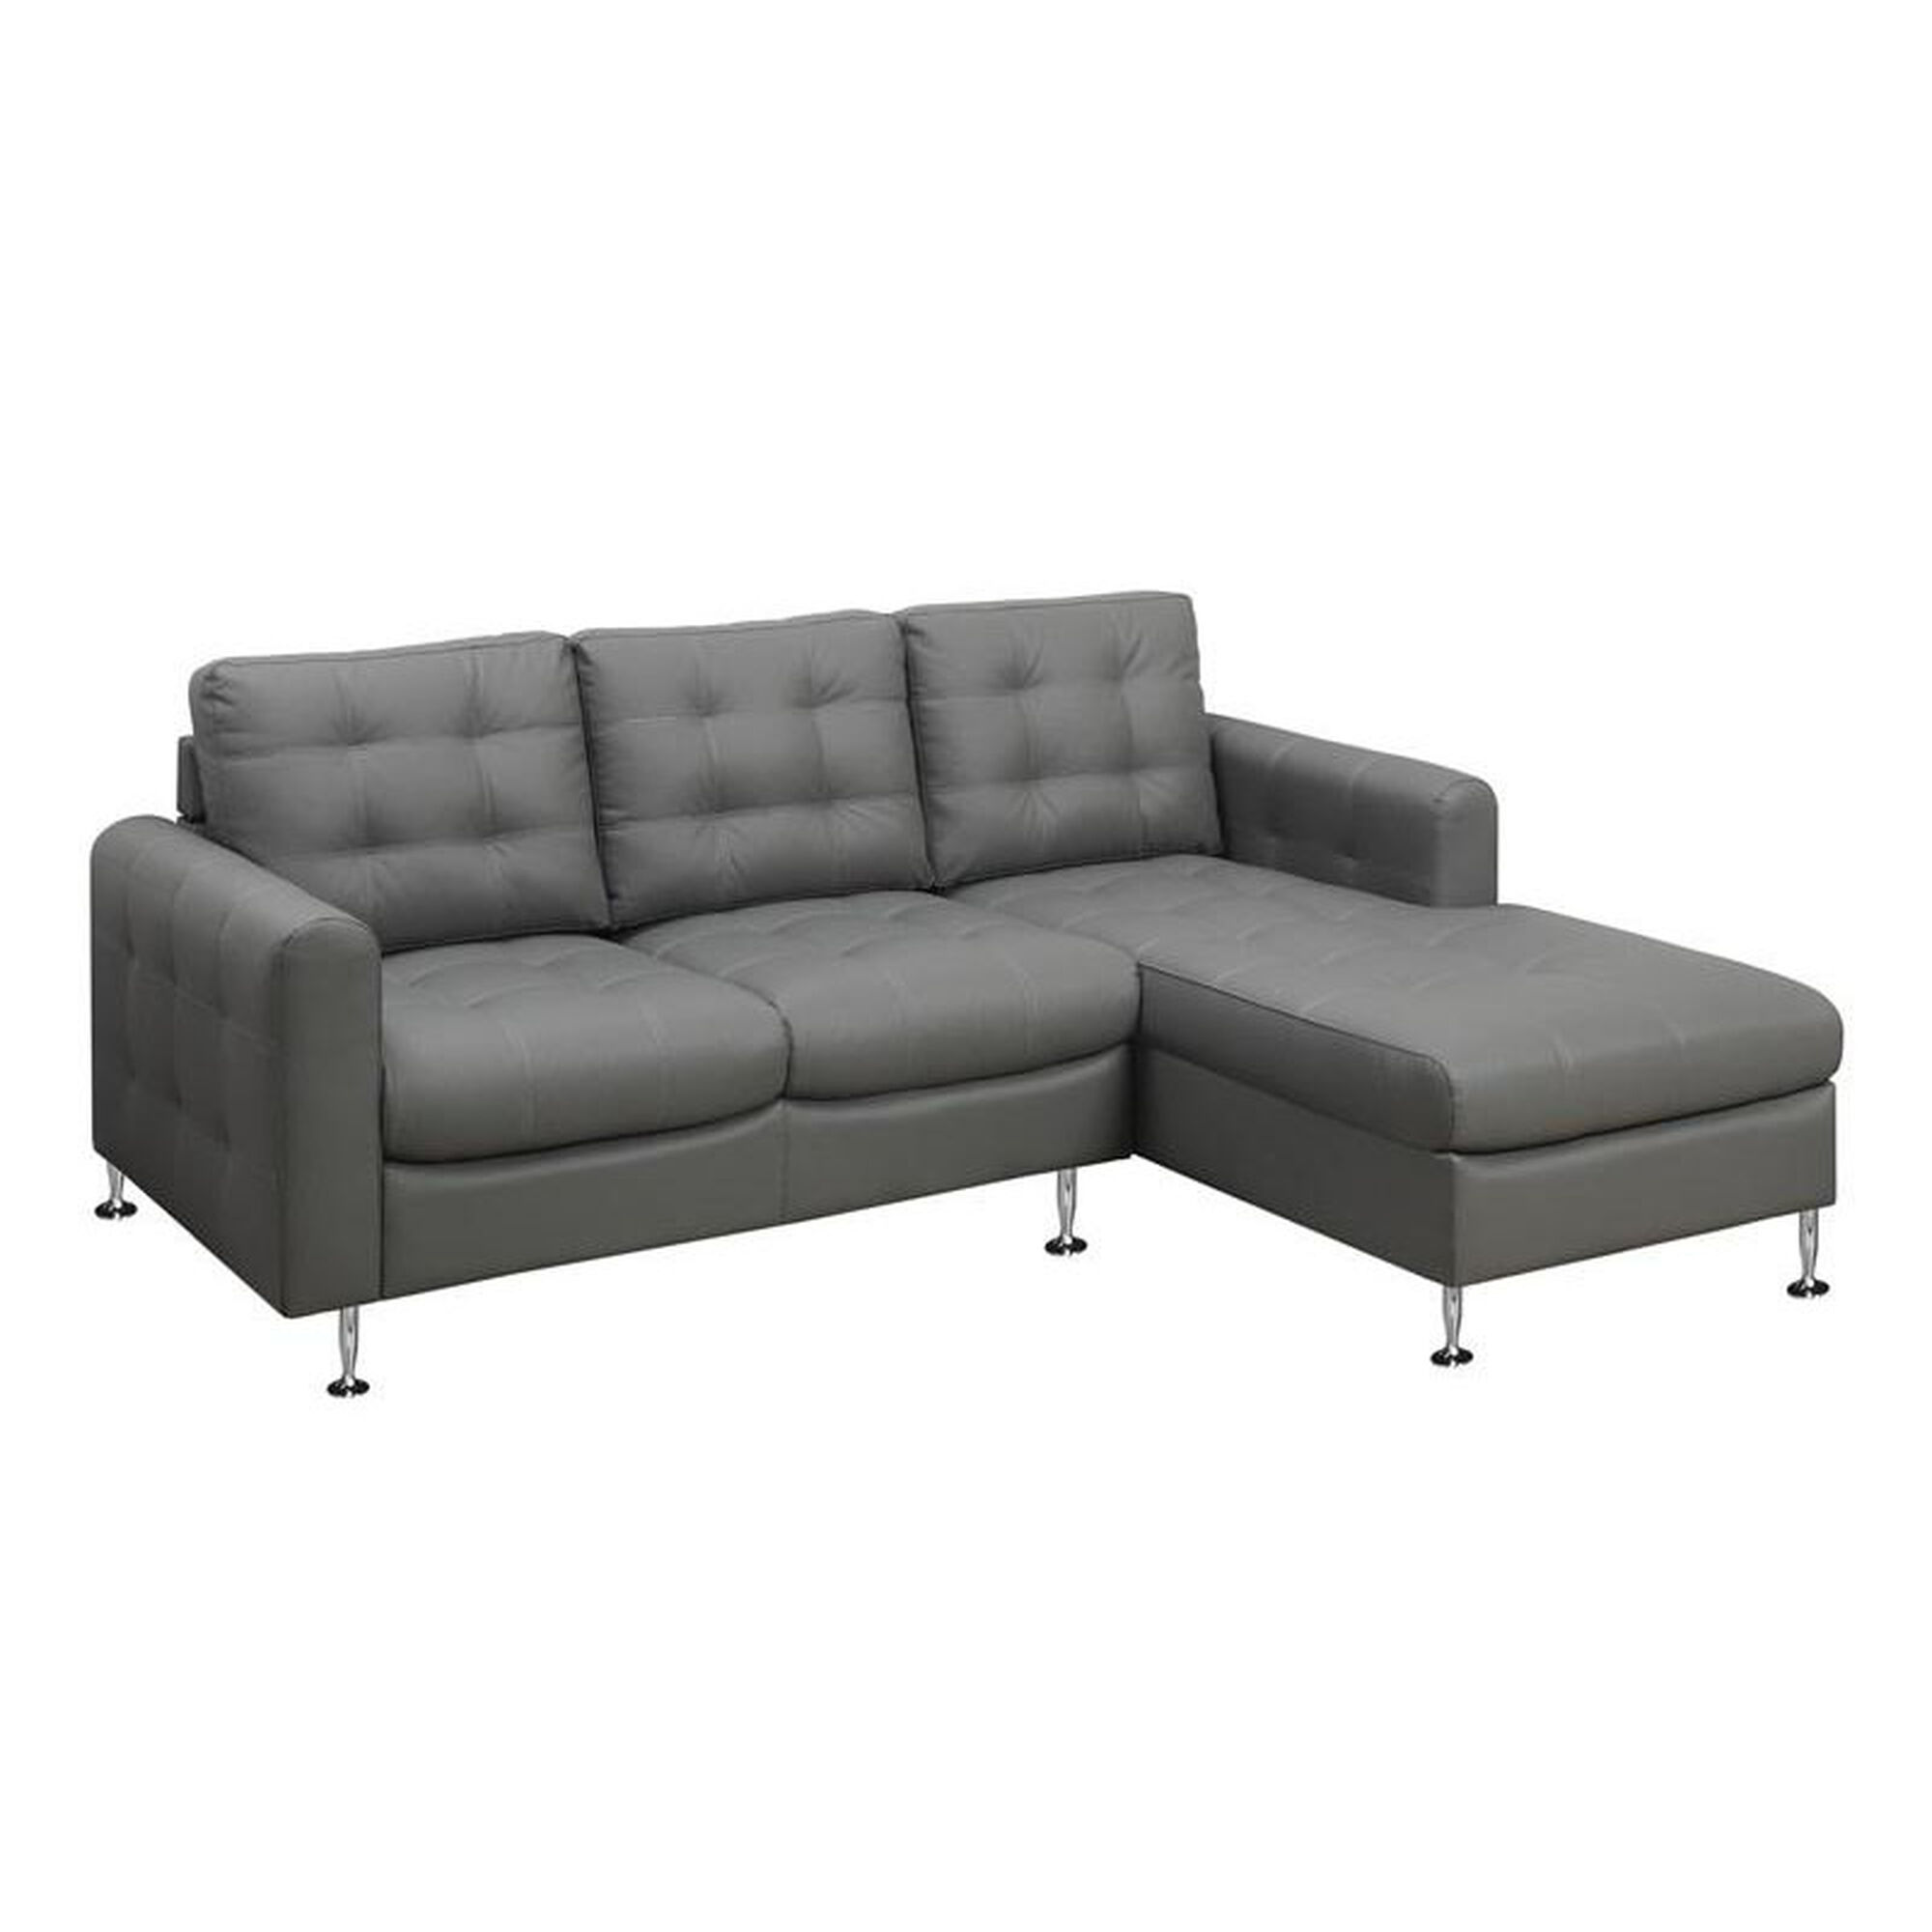 Monarch specialties bonded leather sofa with chaise for Bonded leather sectional with chaise